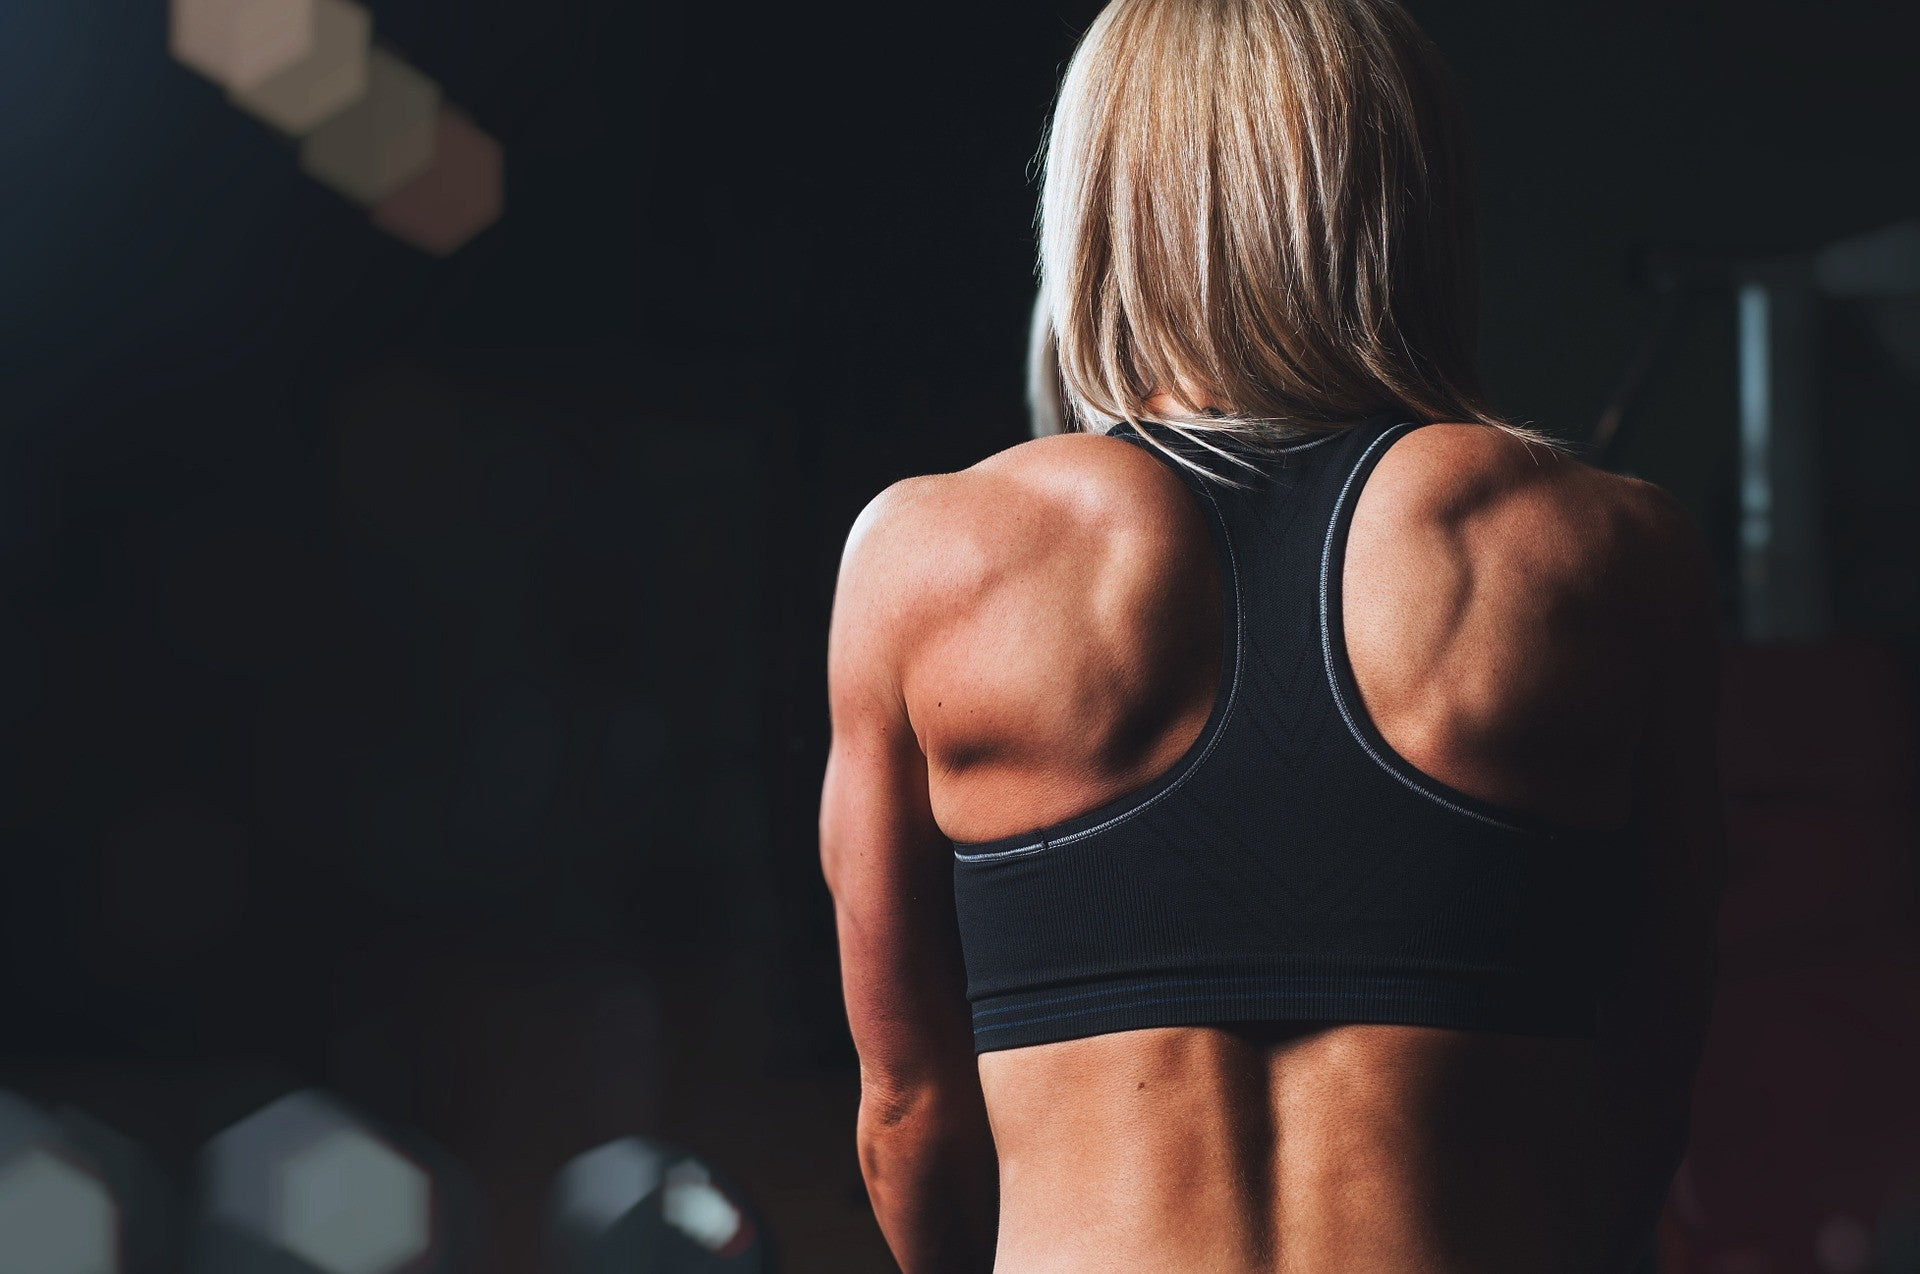 Get a Thicker Back with these 4 Exercises